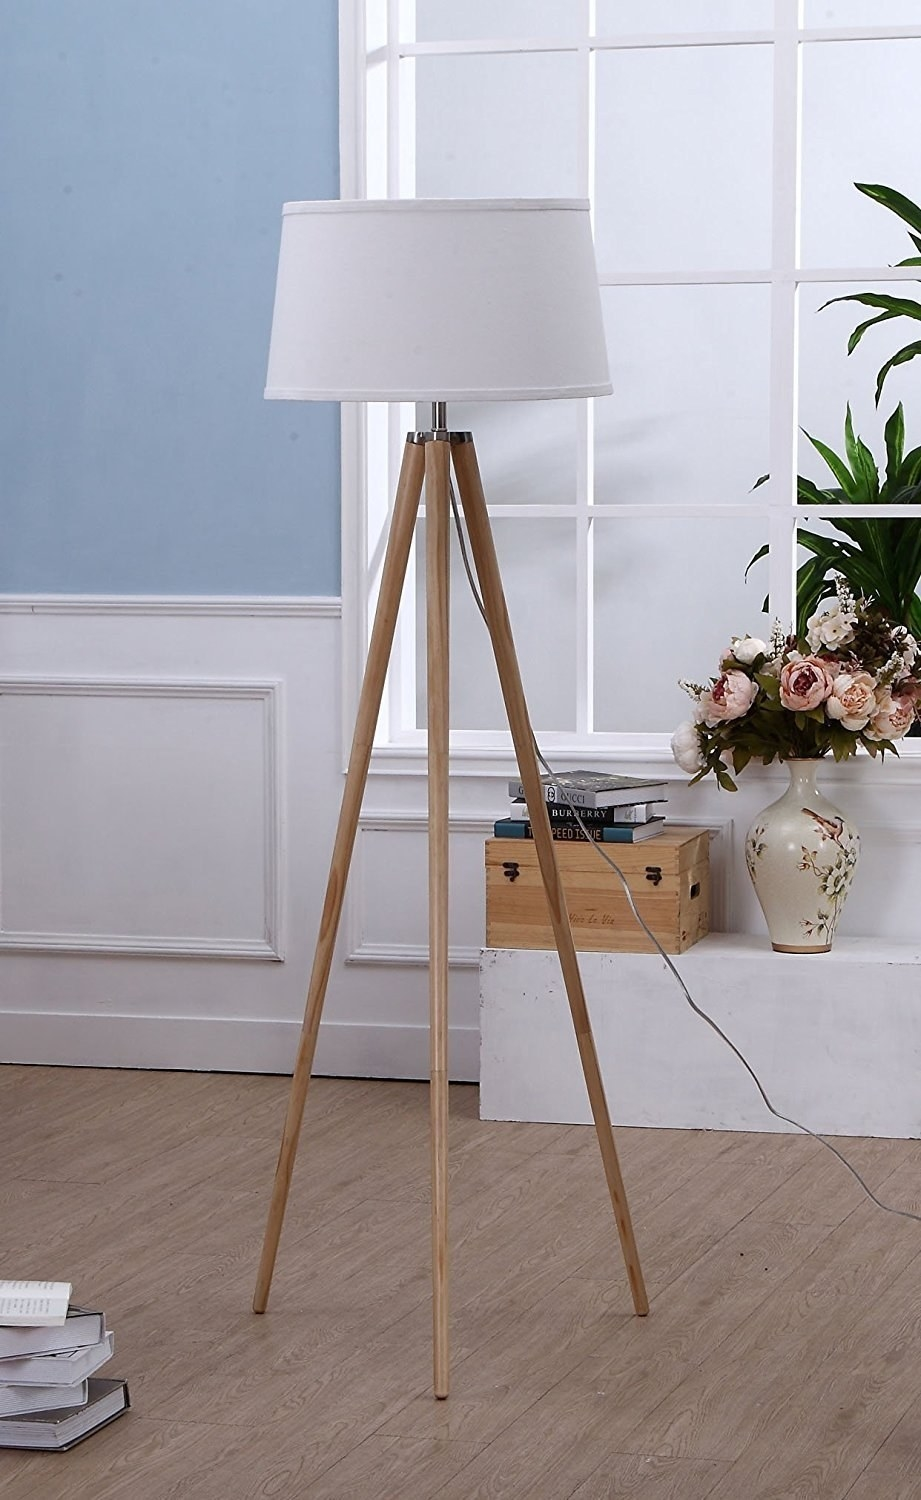 27 ways to decorate your home like a grown